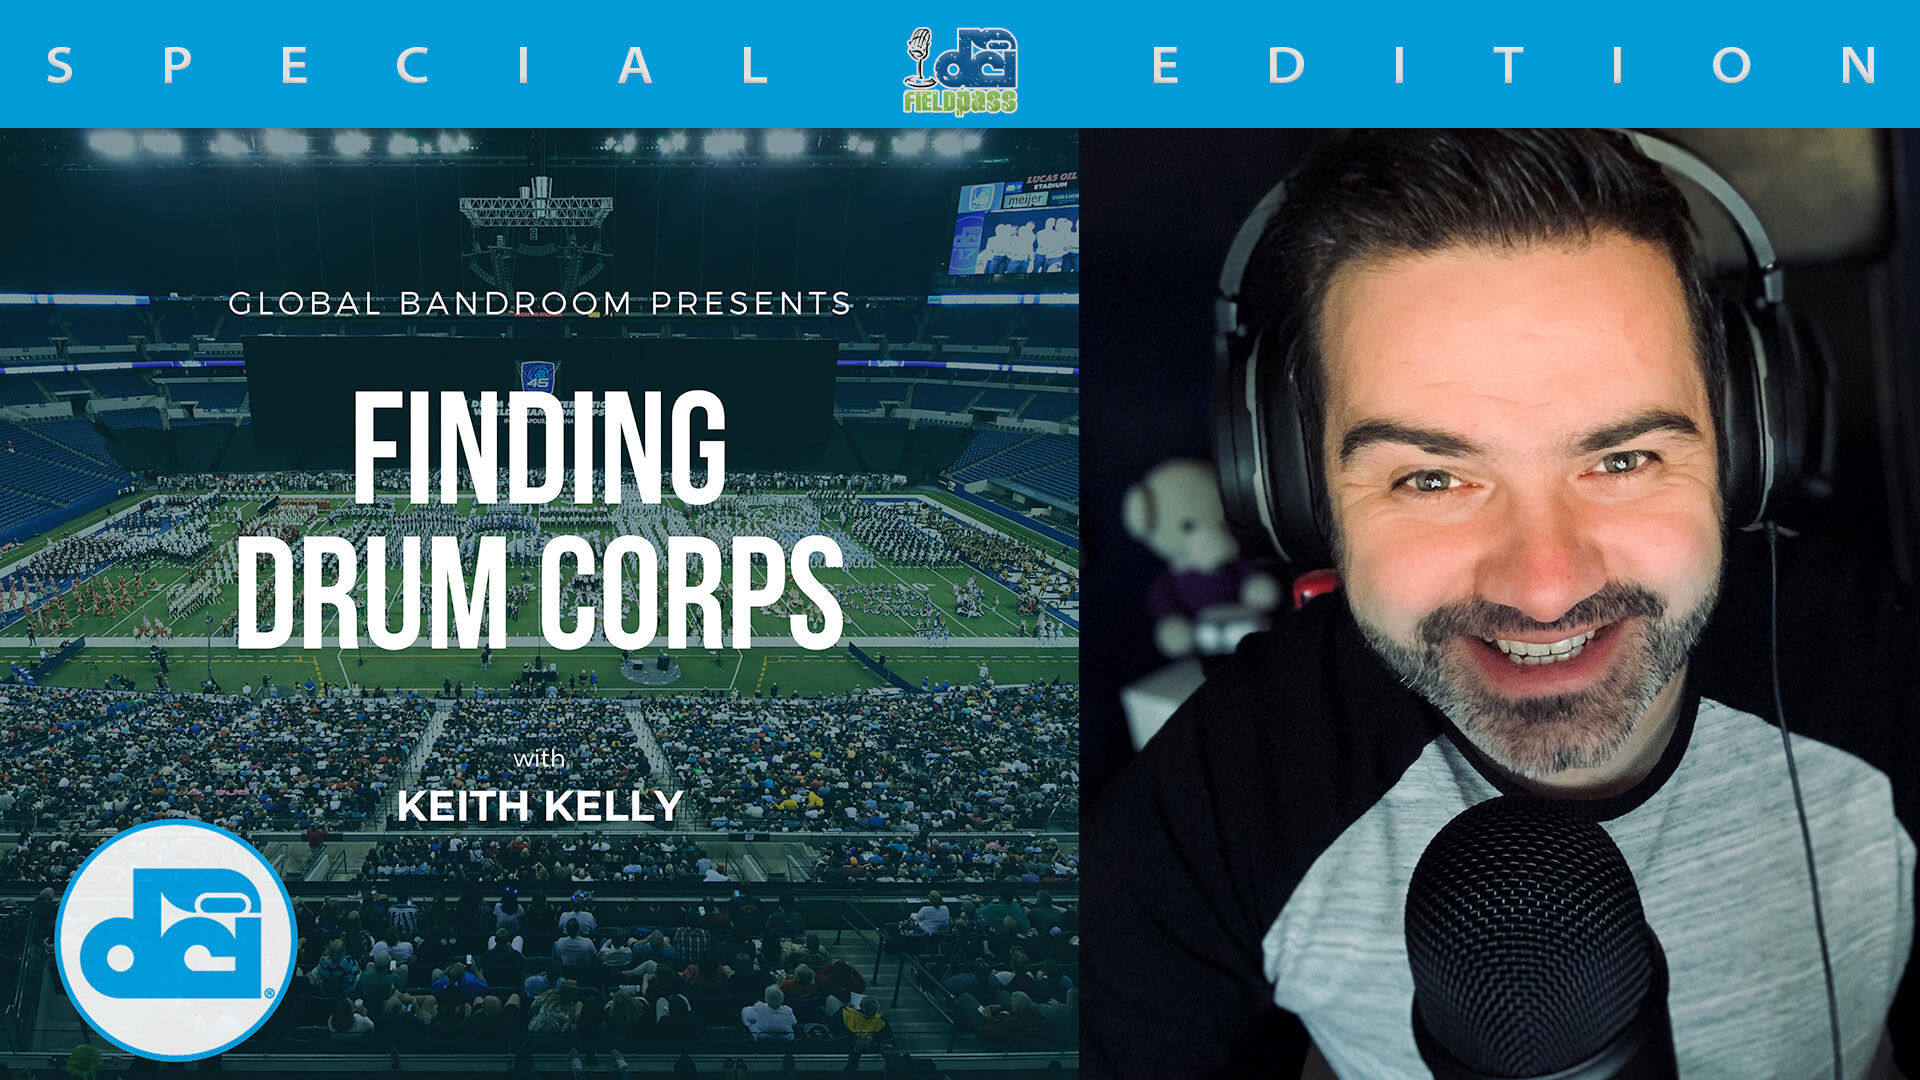 PREVIEW: Finding Drum Corps